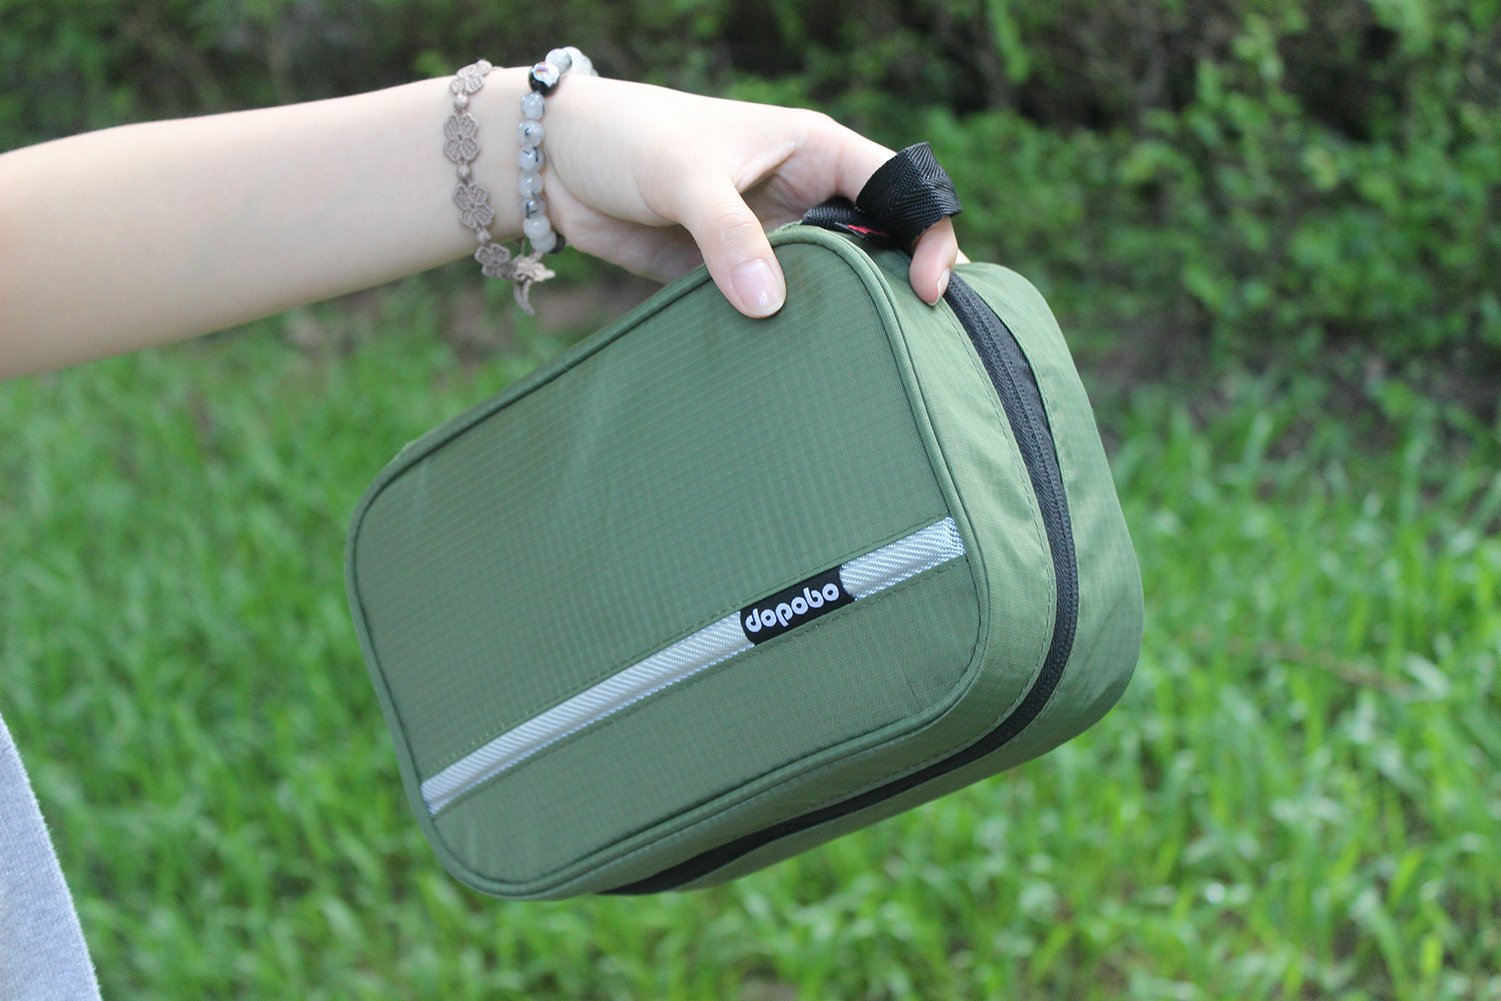 Dopobo Travelling Toiletry Bag Portable Hanging Water-Resistant Wash Bag for Travelling, Business Trip, Camping (army green) by Dopobo (Image #6)